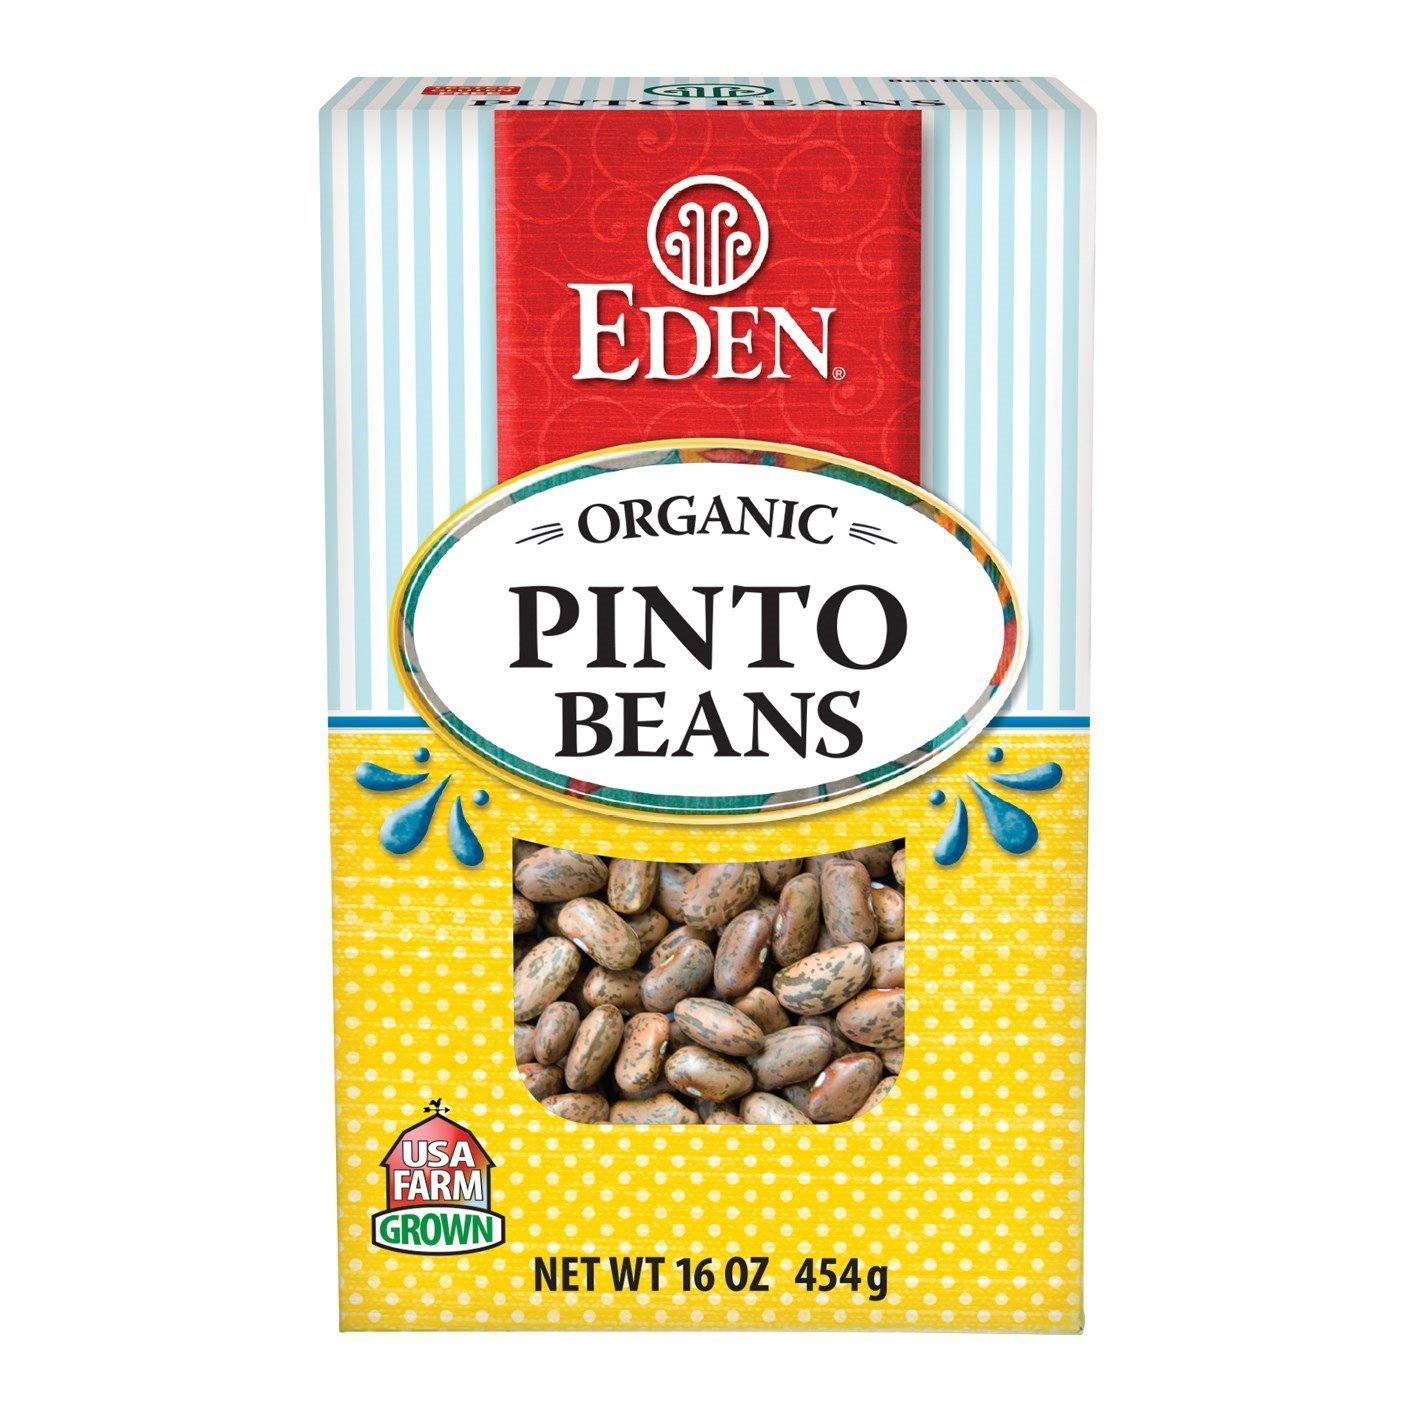 Organic Pinto Beans Dry 16 oz. (Case of 12) by Eden